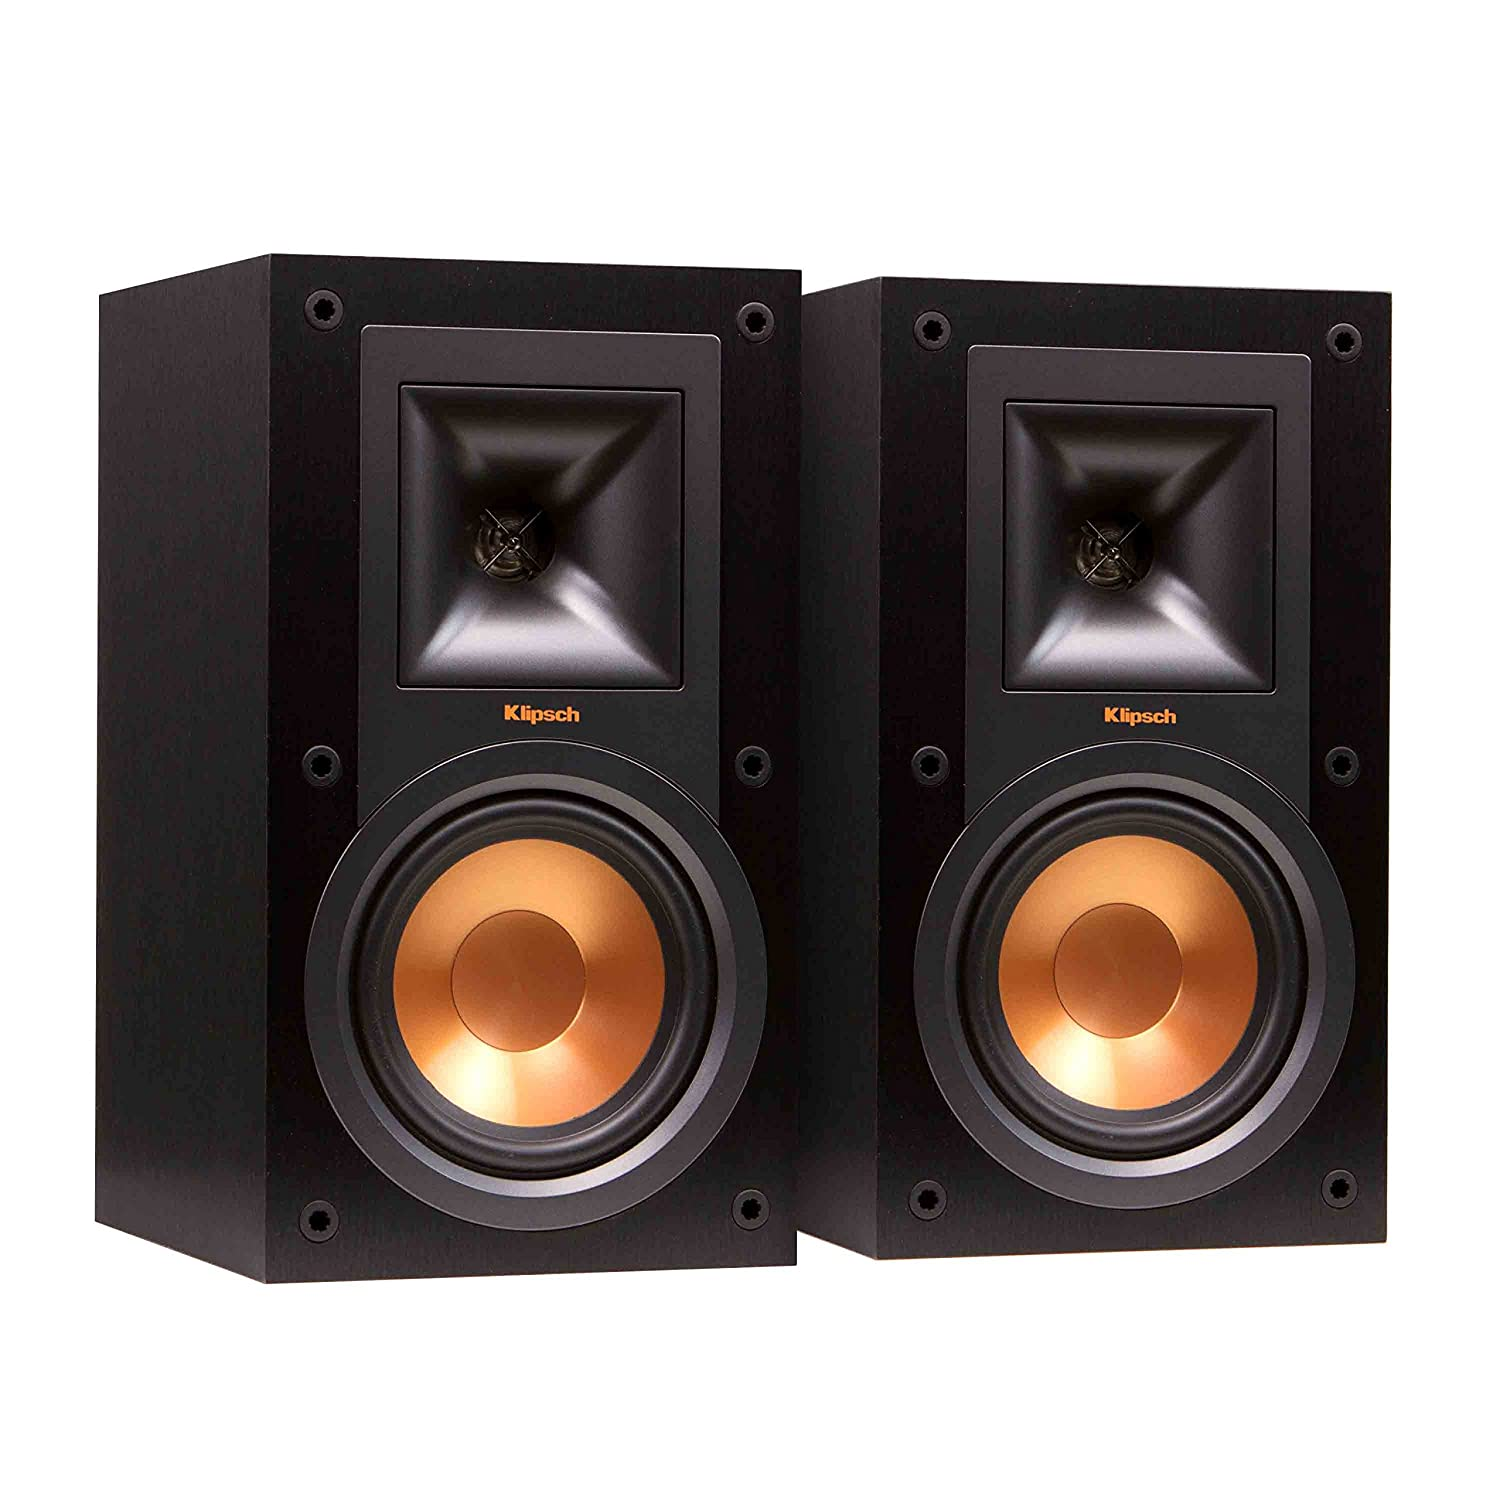 klipsch loudspeakers. amazon.com: klipsch r-15m bookshelf speaker (pair): home audio \u0026 theater loudspeakers p